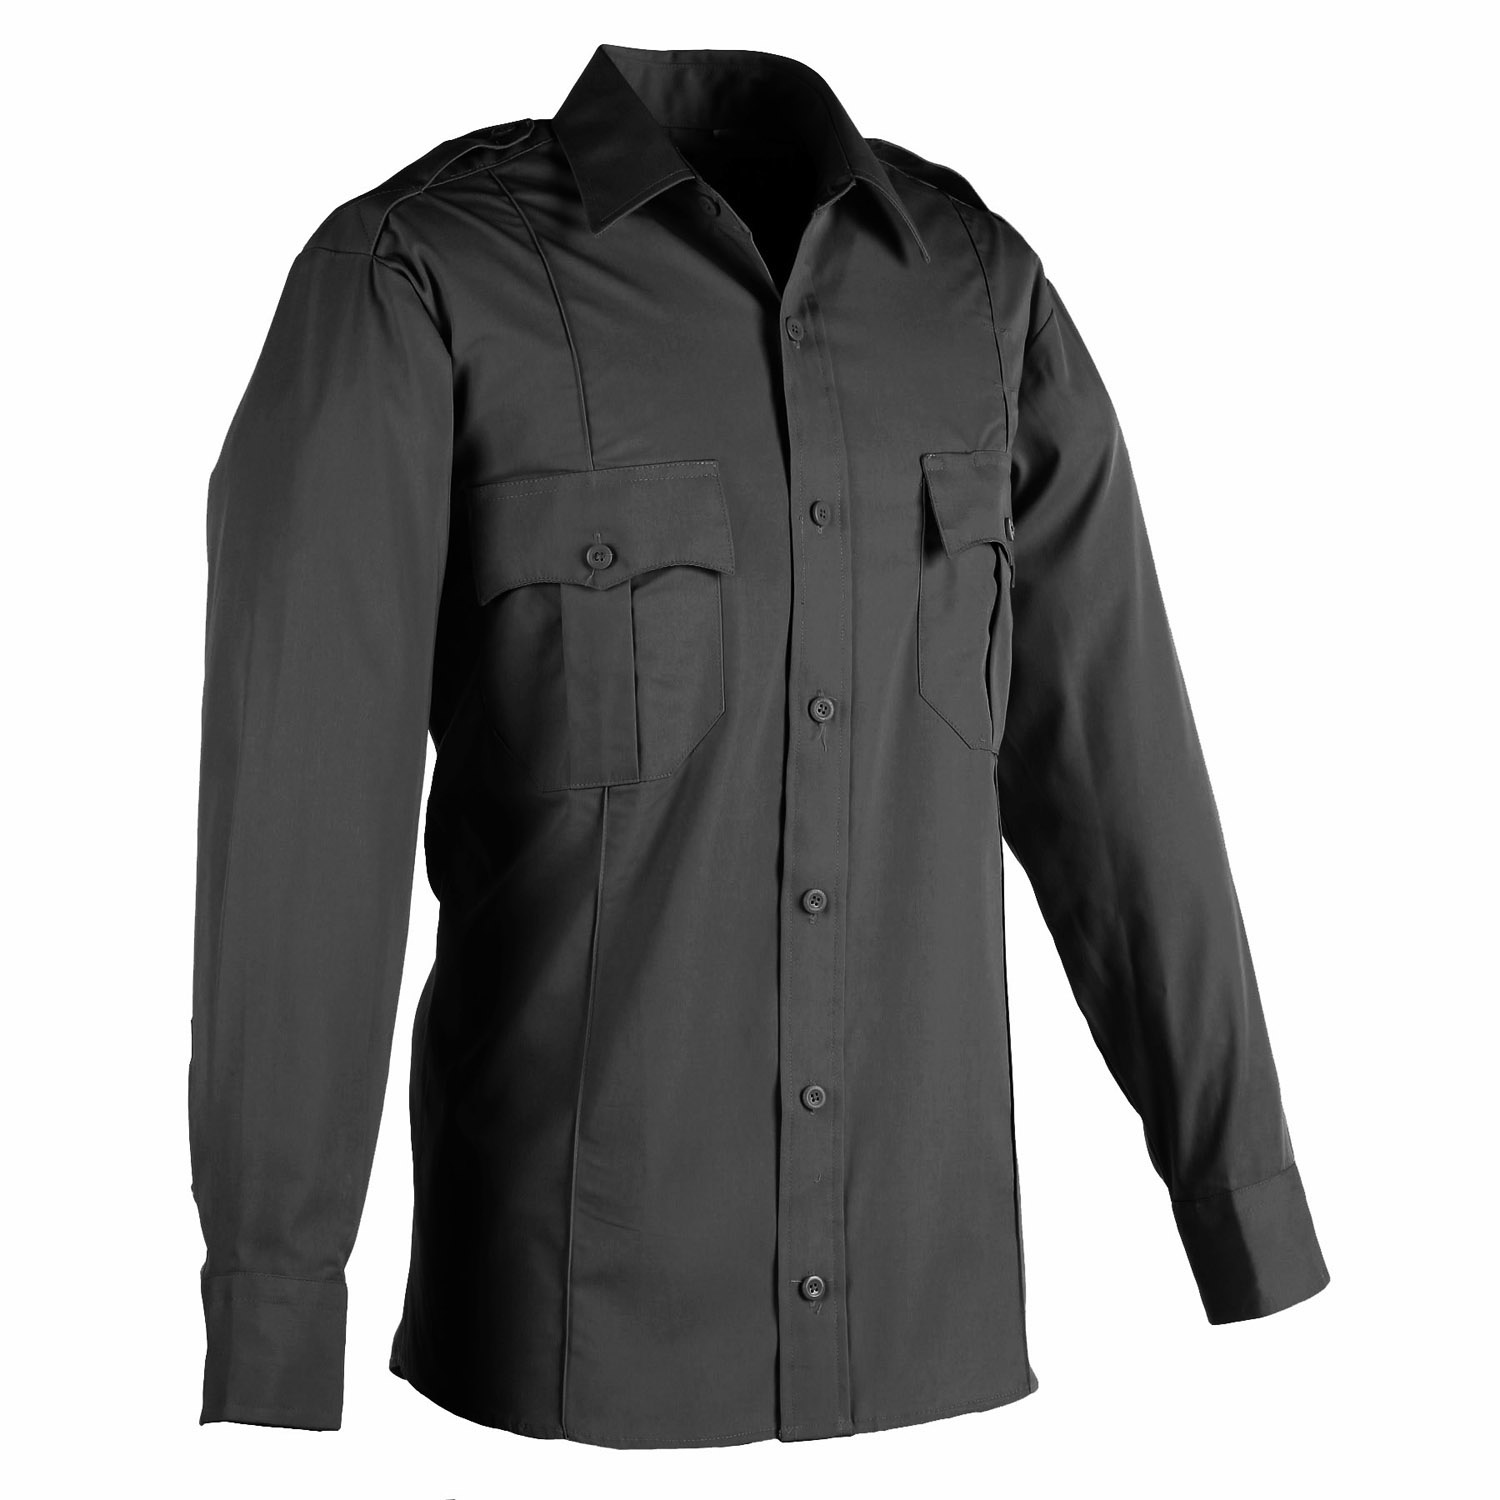 LawPro Poly Cotton Long Sleeve Premium Shirt